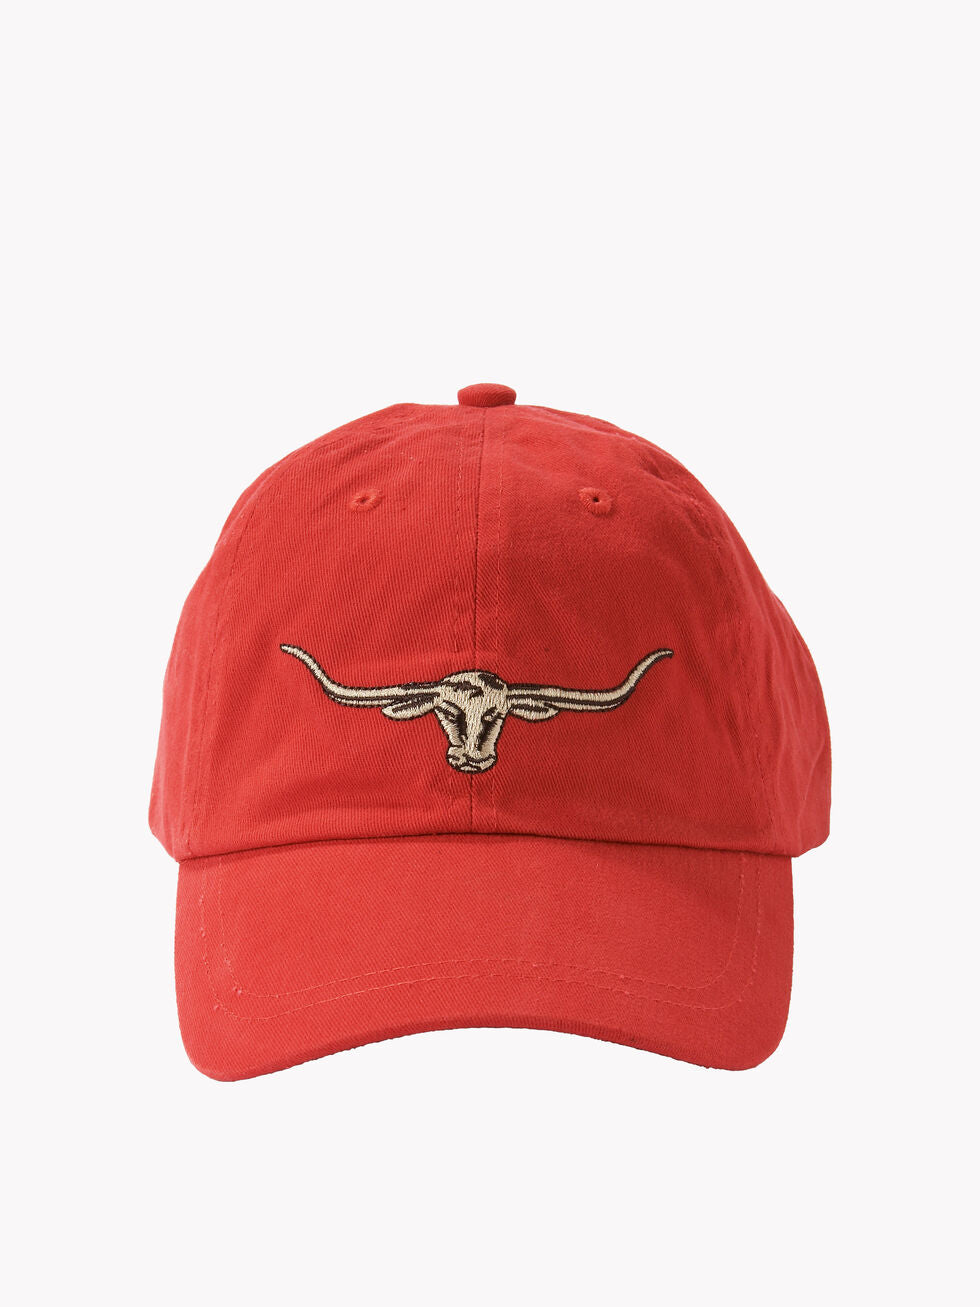 RMW Steers Head Logo Cap - Red